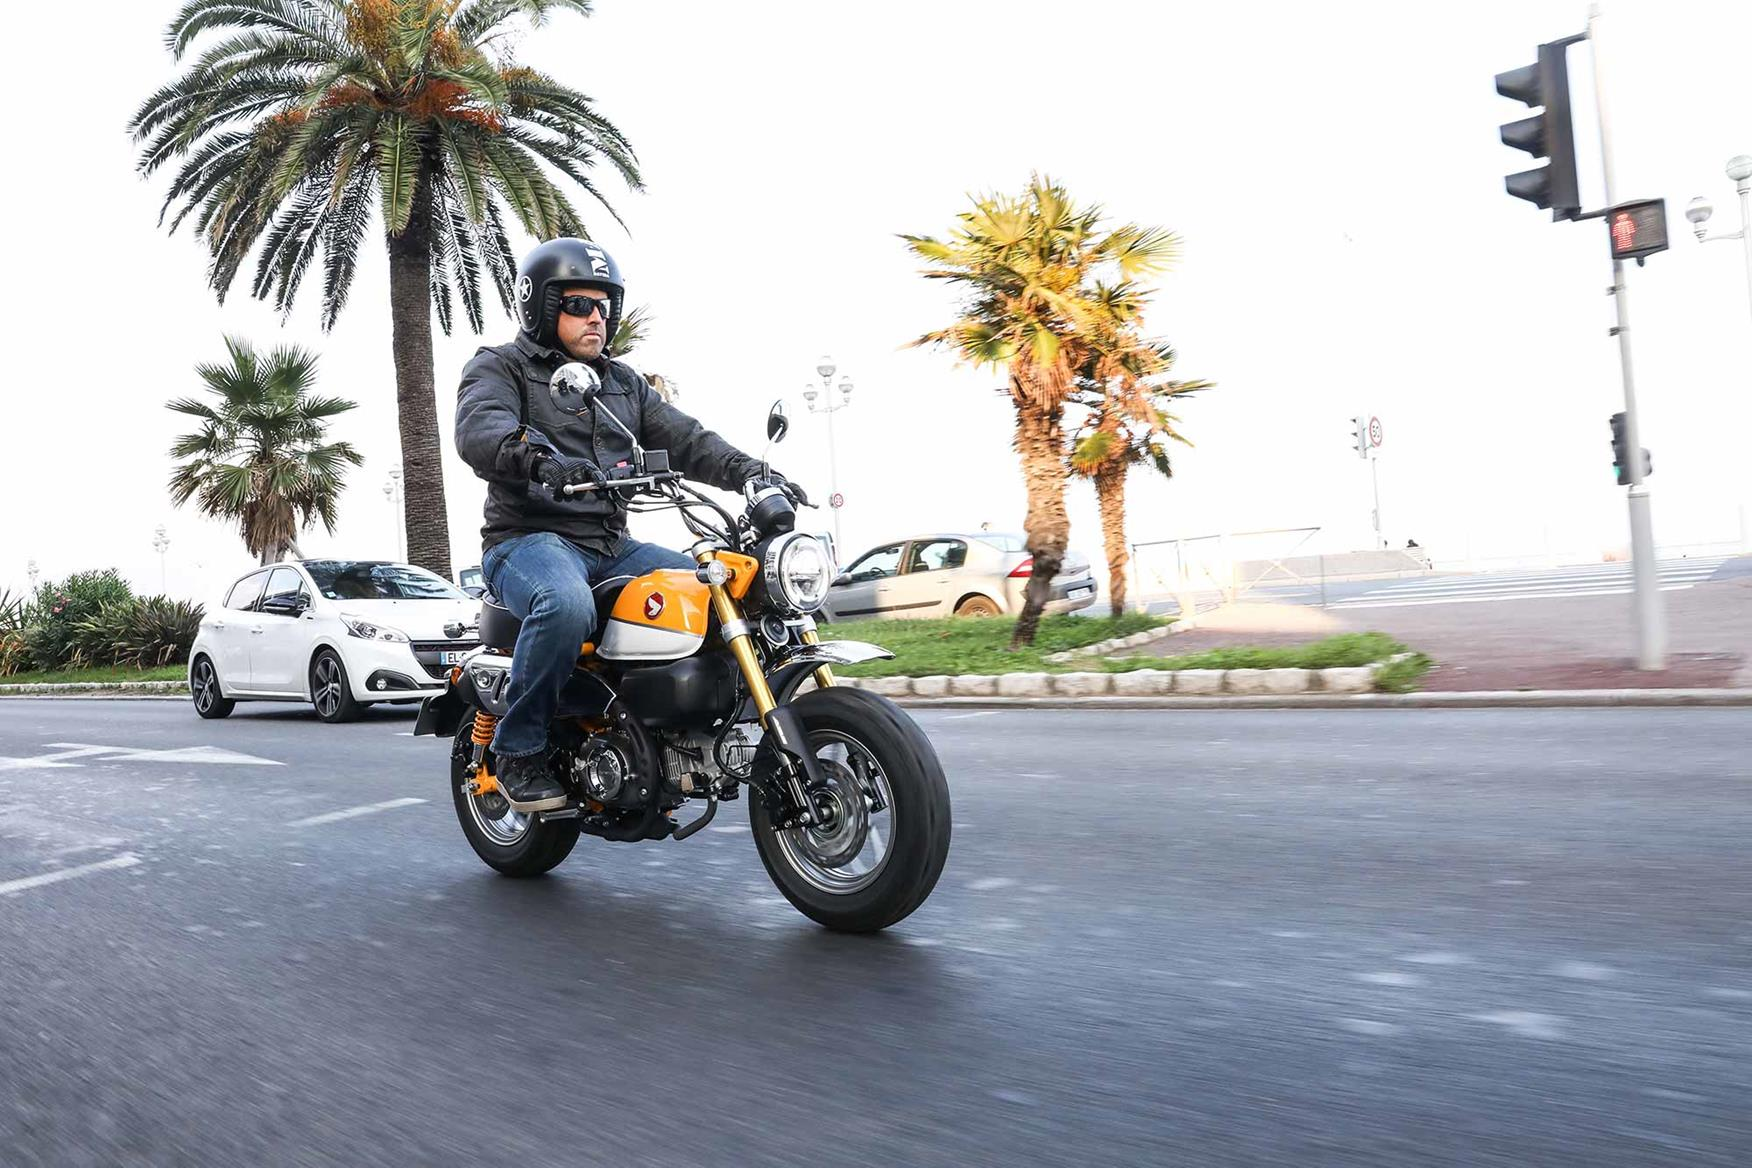 MCN's Child rides the new Monkey in Nice